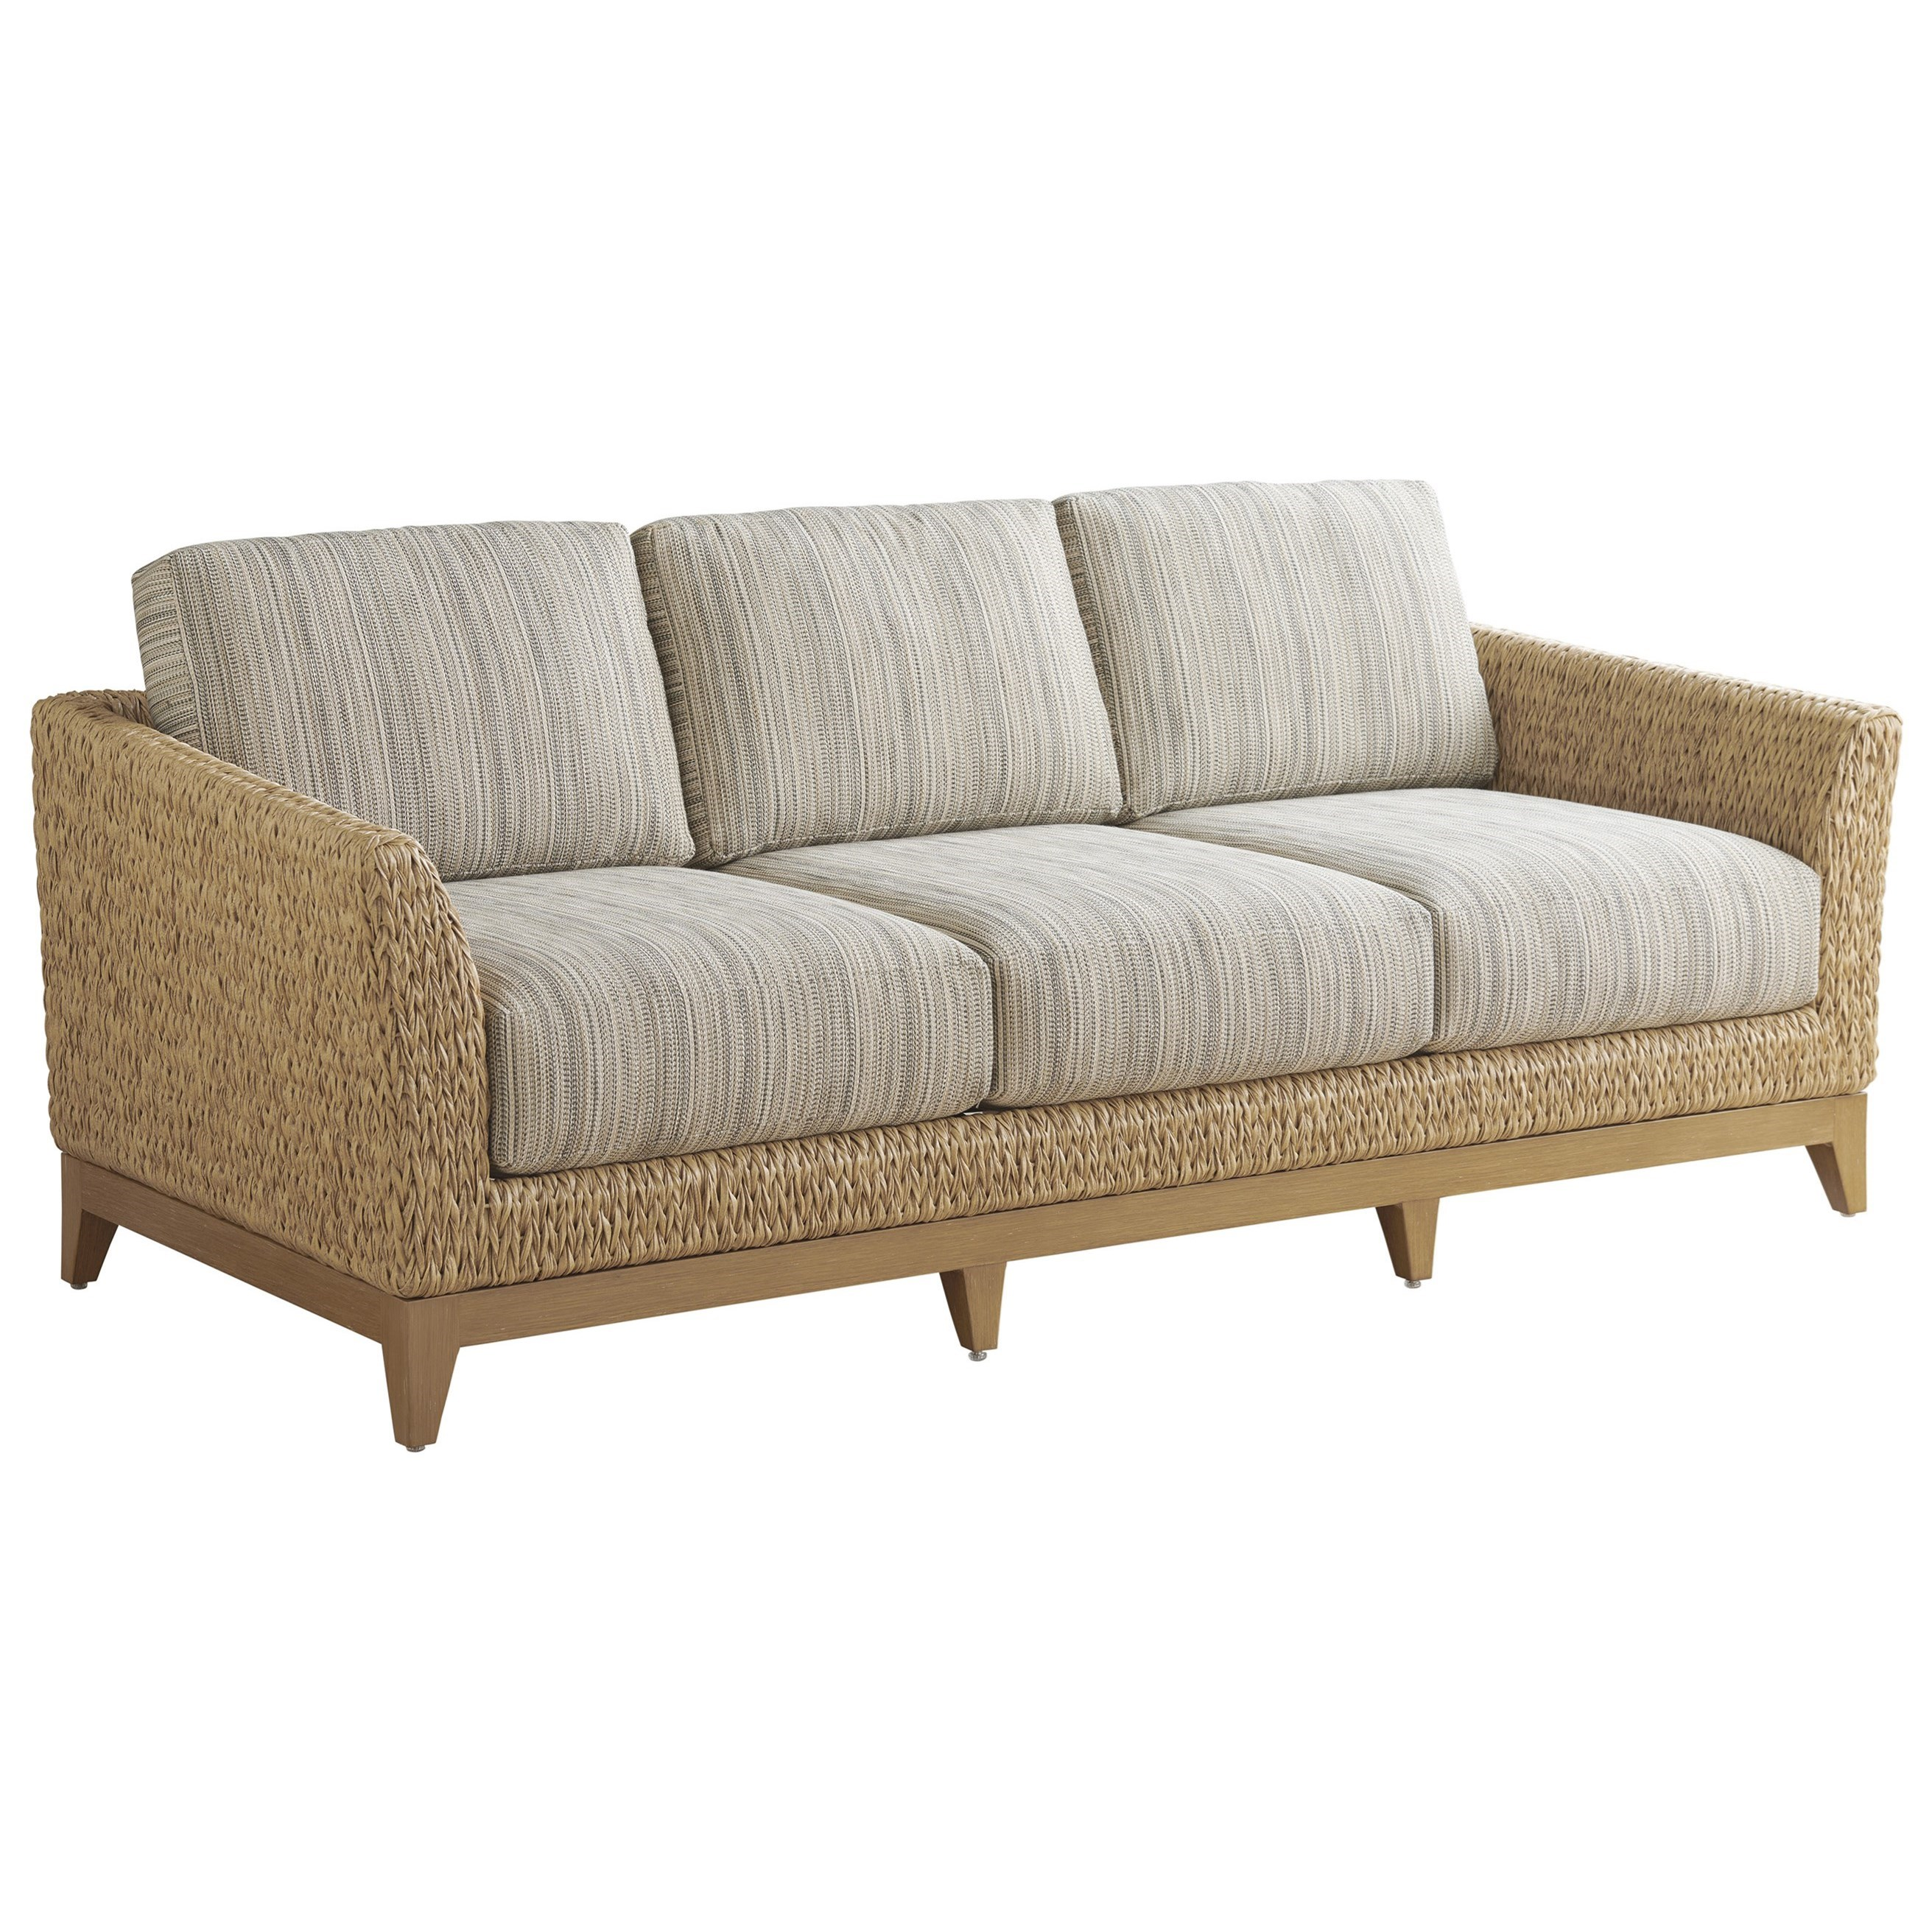 Los Altos Valley View Sofa by Tommy Bahama Outdoor Living at Baer's Furniture